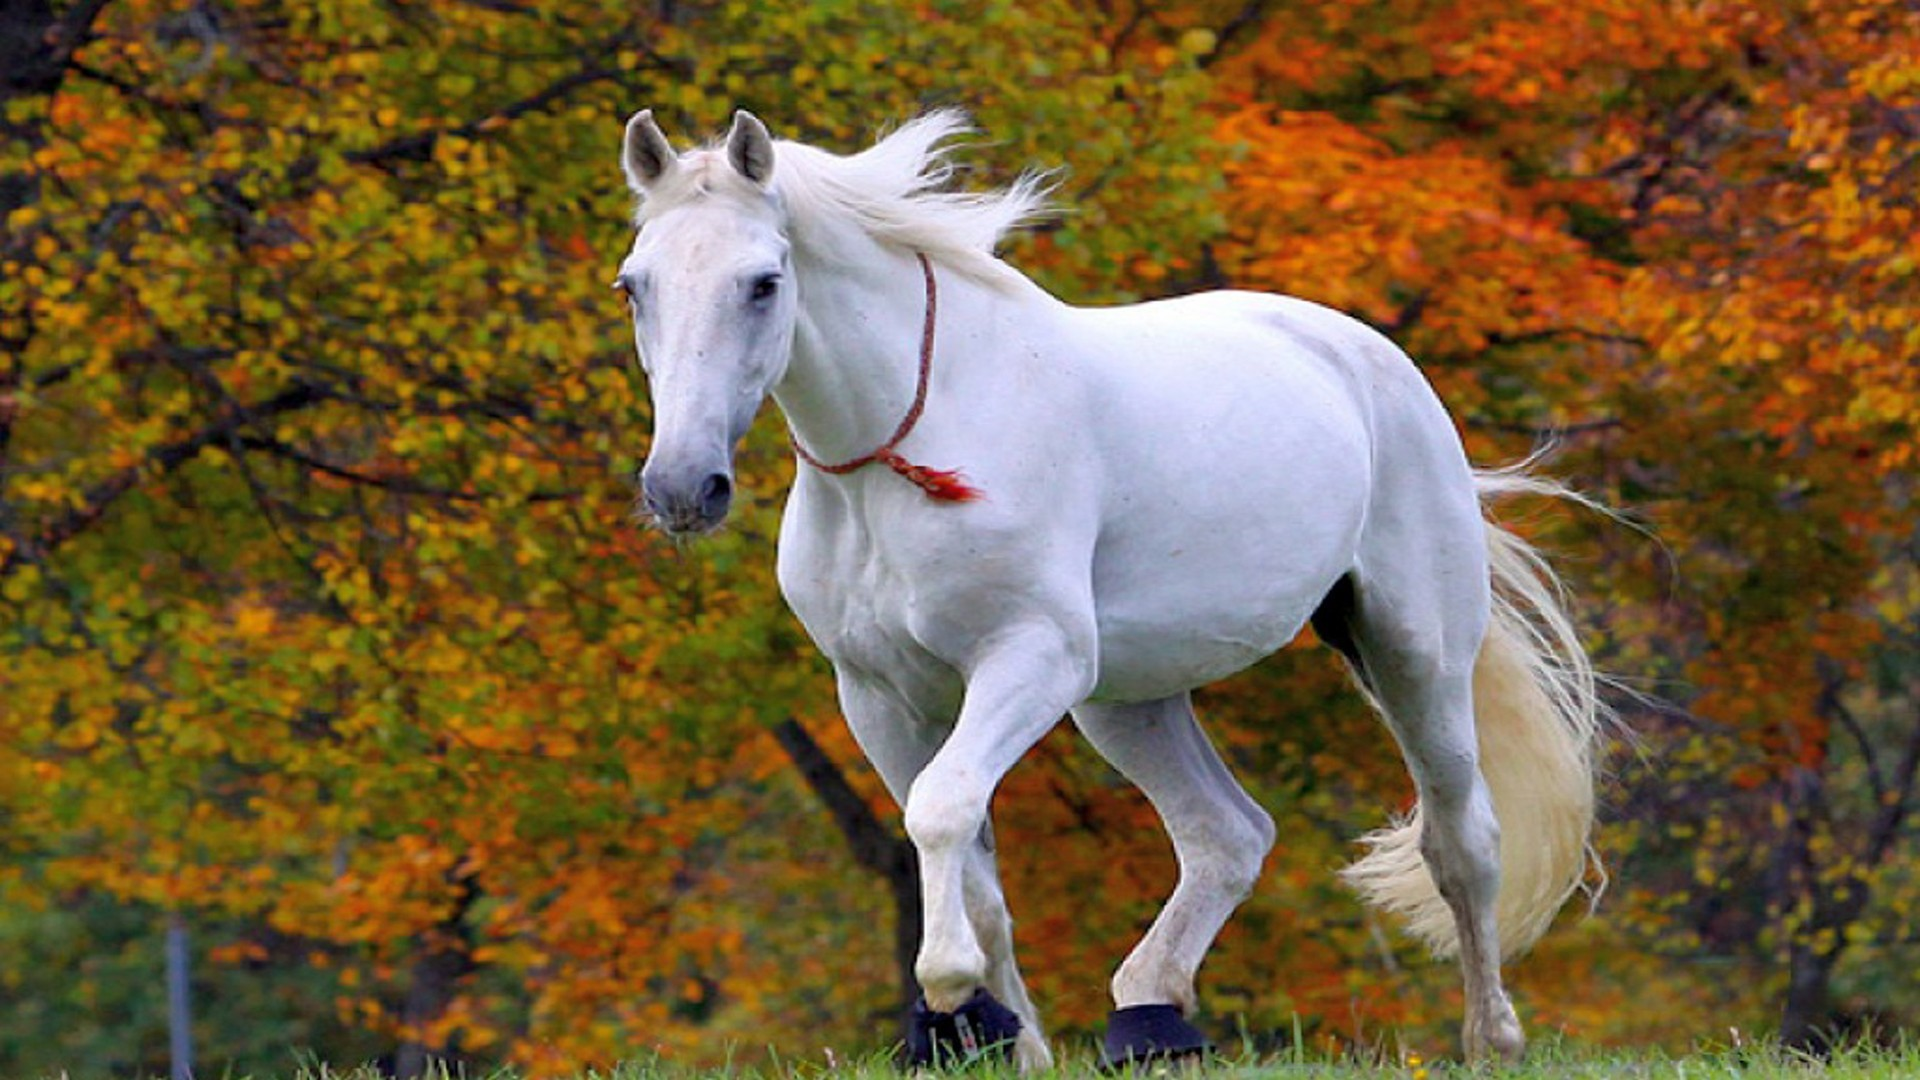 Res: 1920x1080, Beautiful White Horse Wallpaper Hd